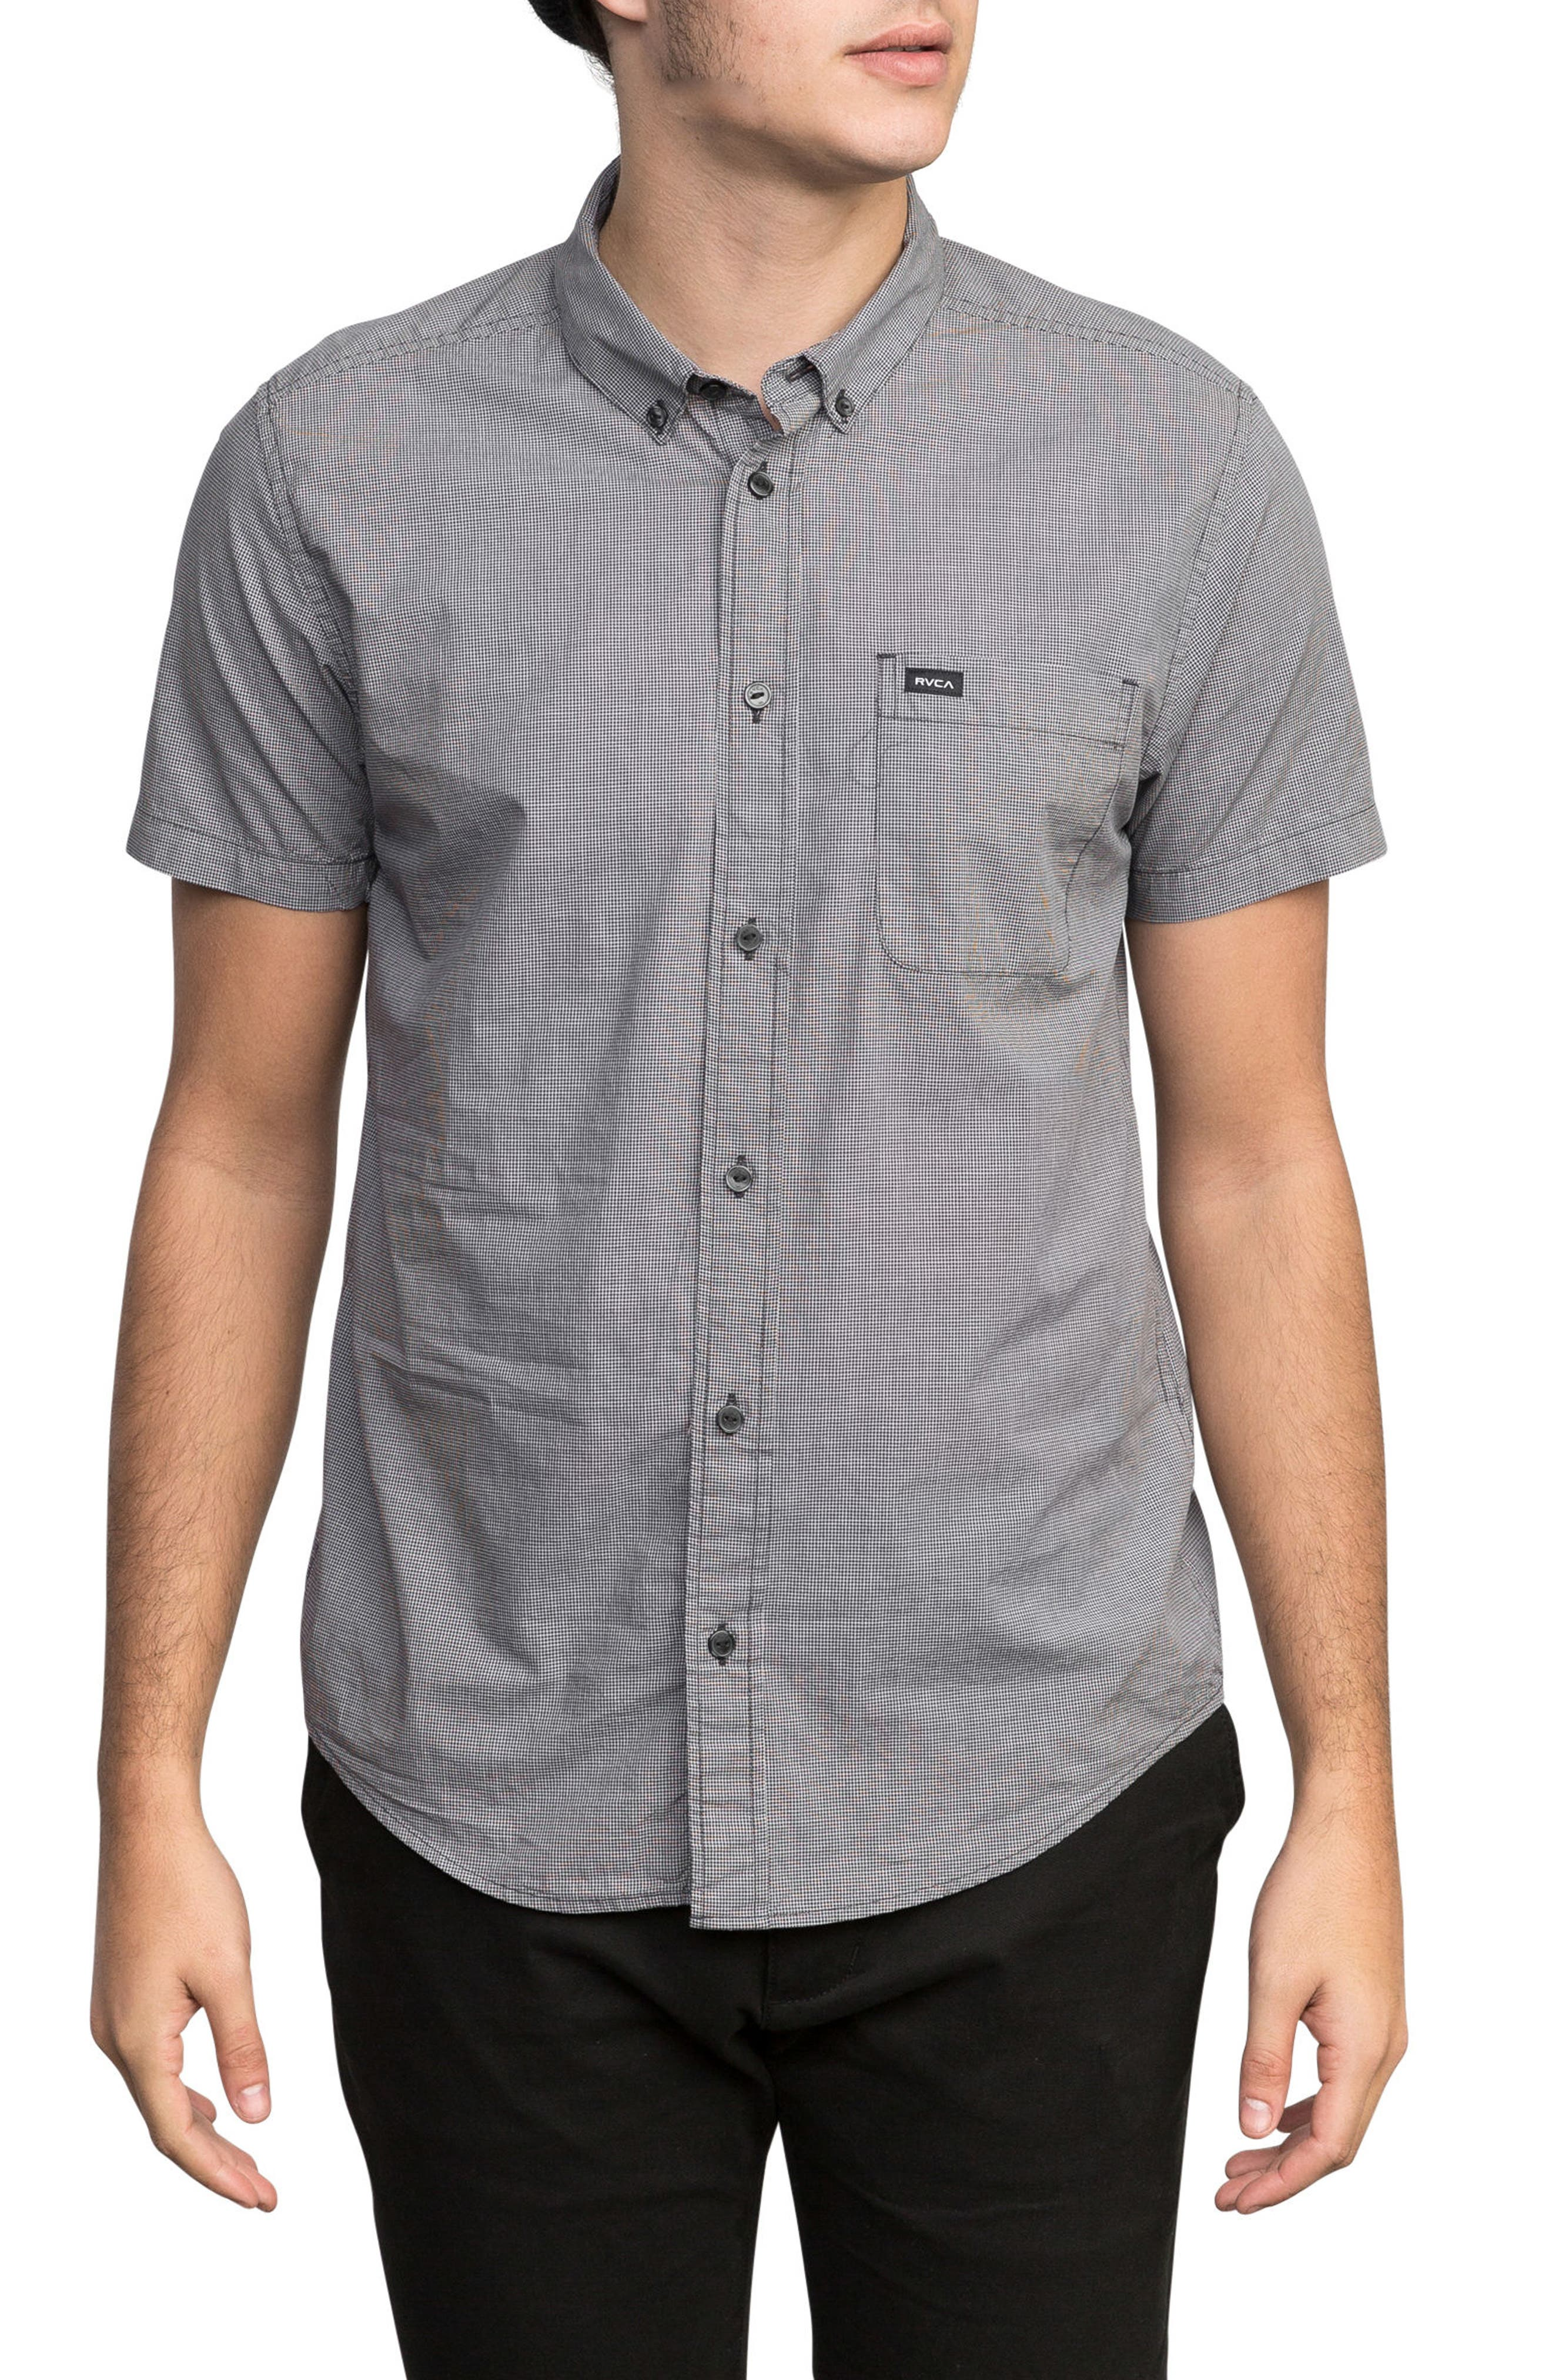 'That'll Do' Slim Fit Microdot Woven Shirt,                         Main,                         color, 460